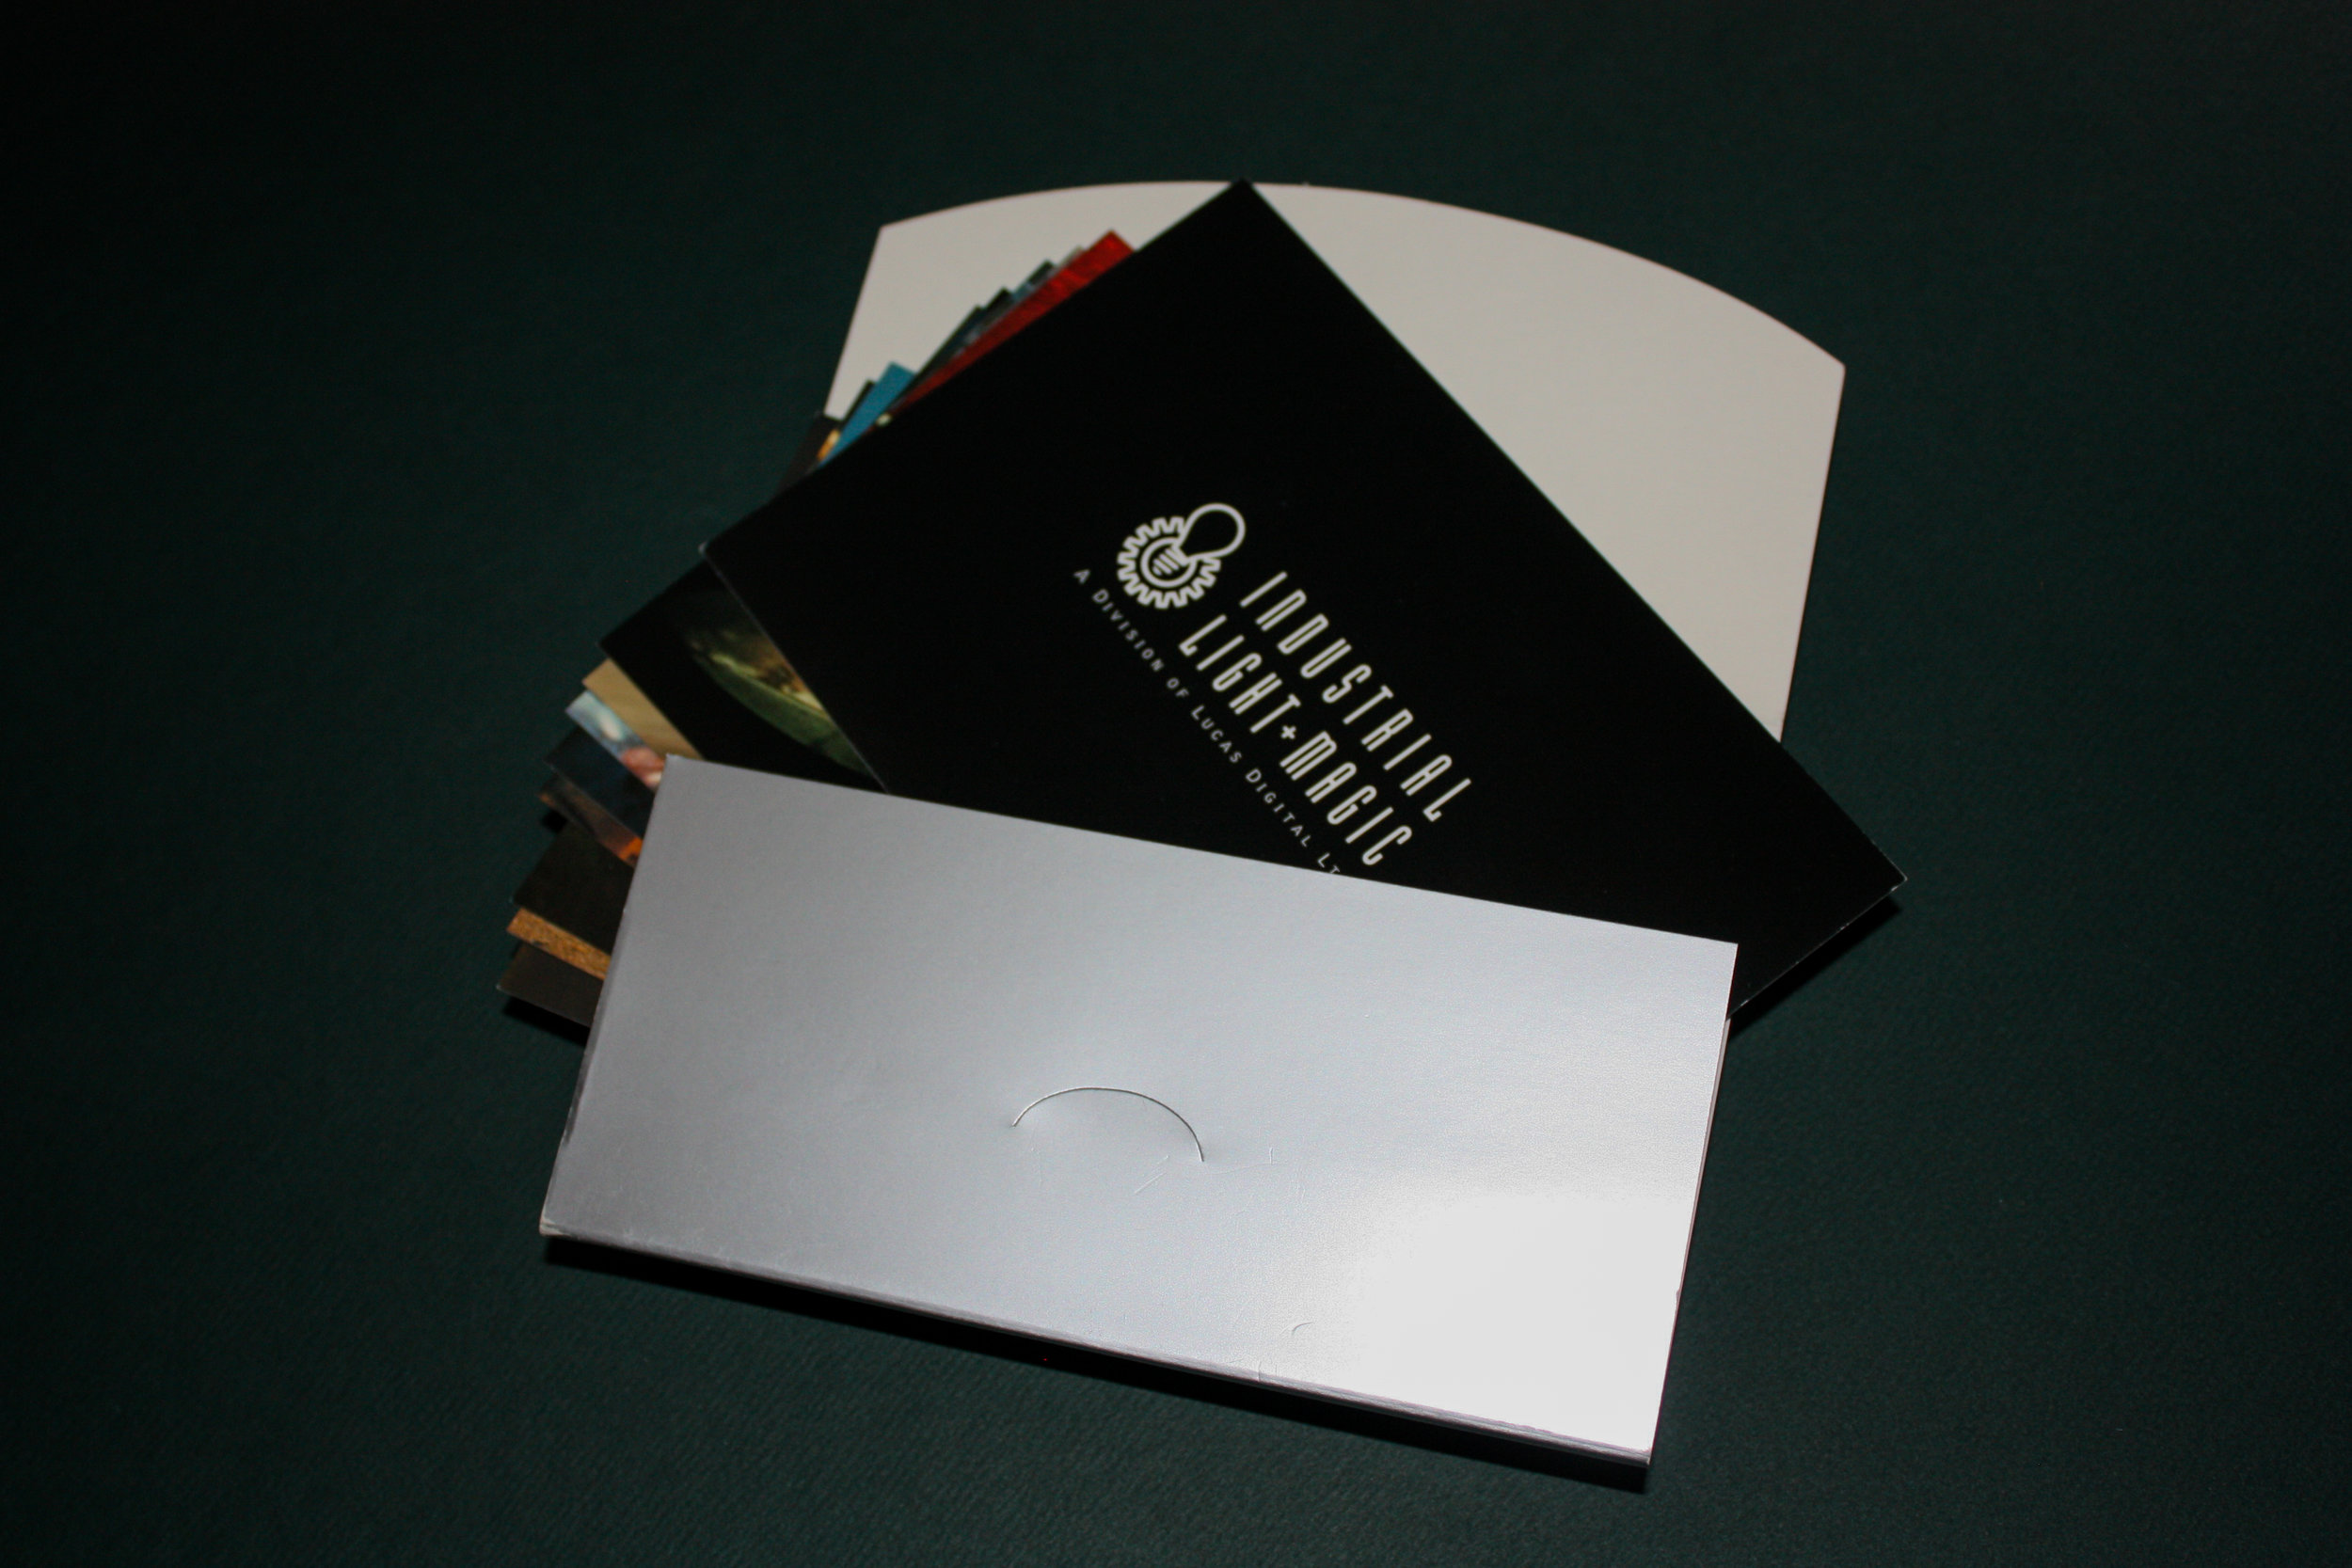 Promotional Sleeve with Postcards Client:  ILM  Outer sleeve diecut & embossed, multiple post cards inserted, then sealed with locking tab.